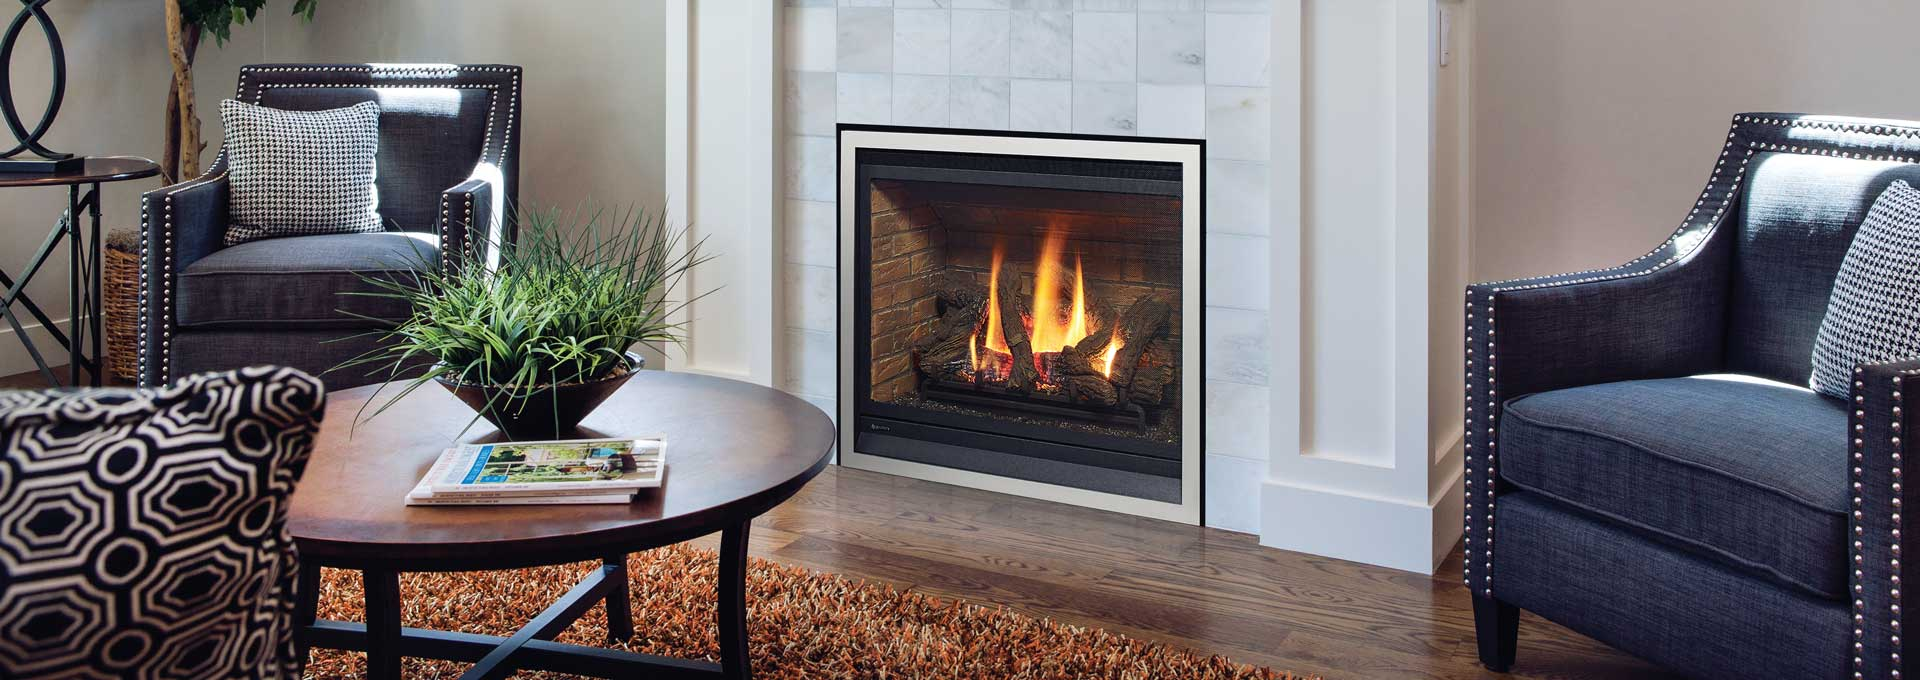 How To Buy A Fireplace 6 Tips